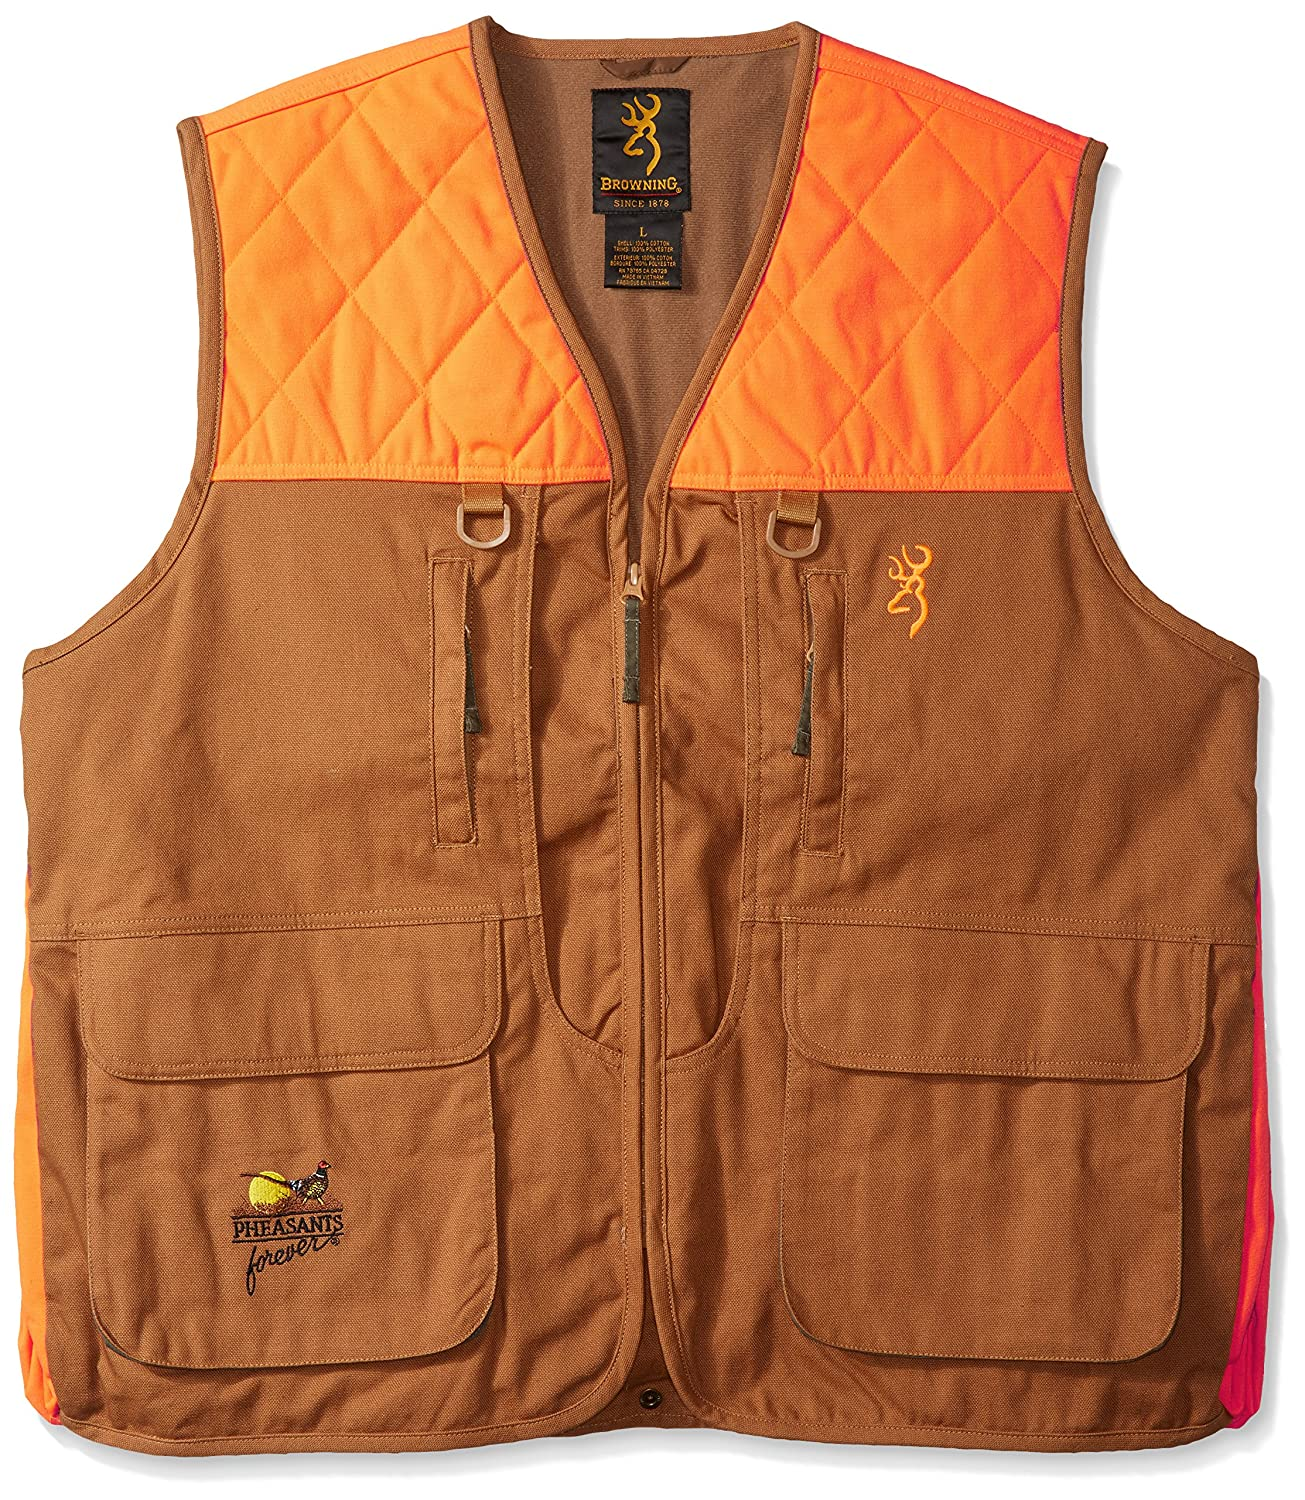 Browning Pheasants Forever Vest Green Supply 3051163202-P